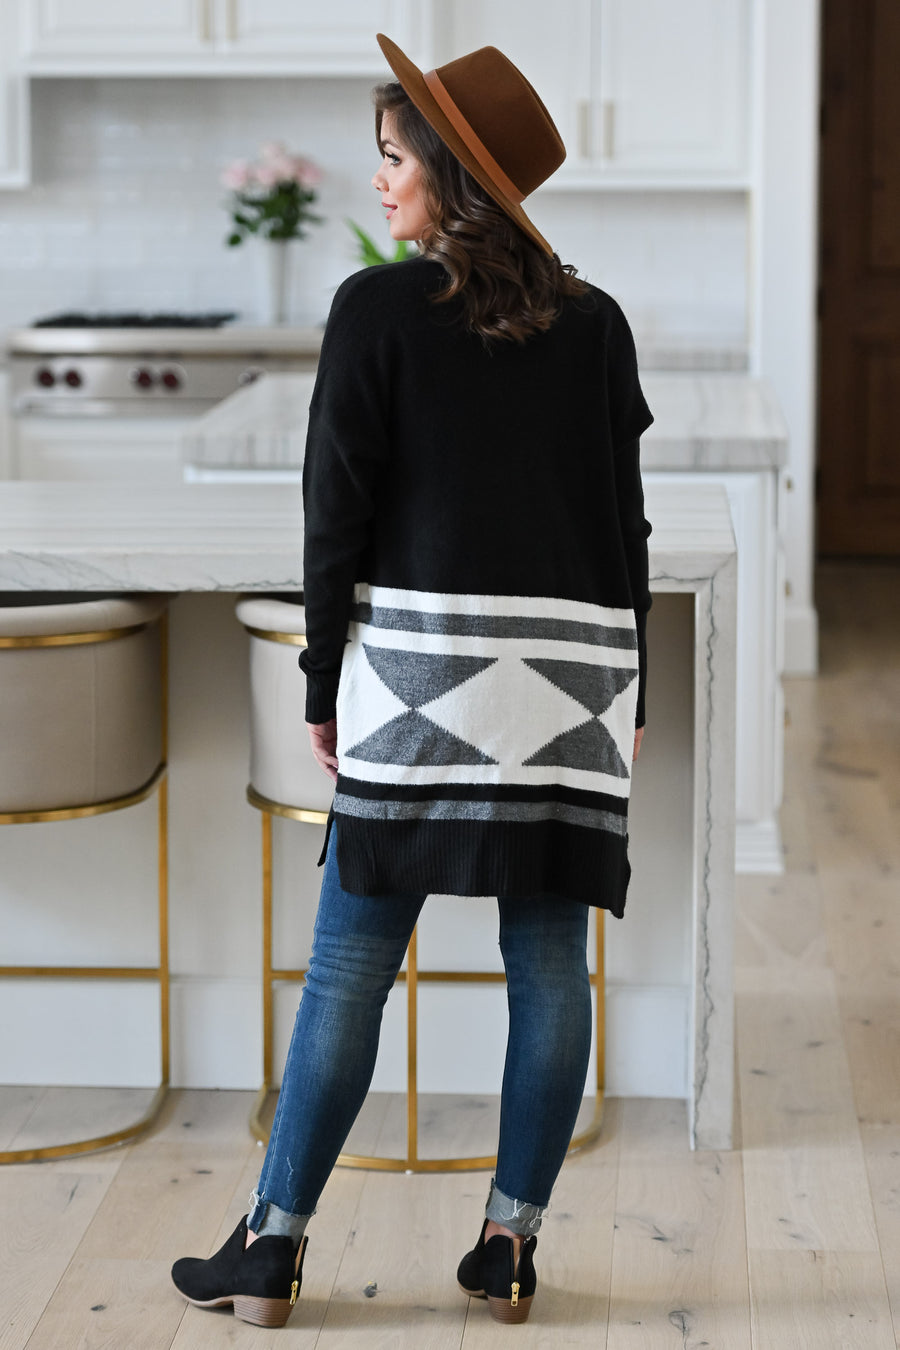 Who You Are Cardigan - Black womens trendy long sleeve oversized geometric print cardigan front 2; Model: Hannah Ann S